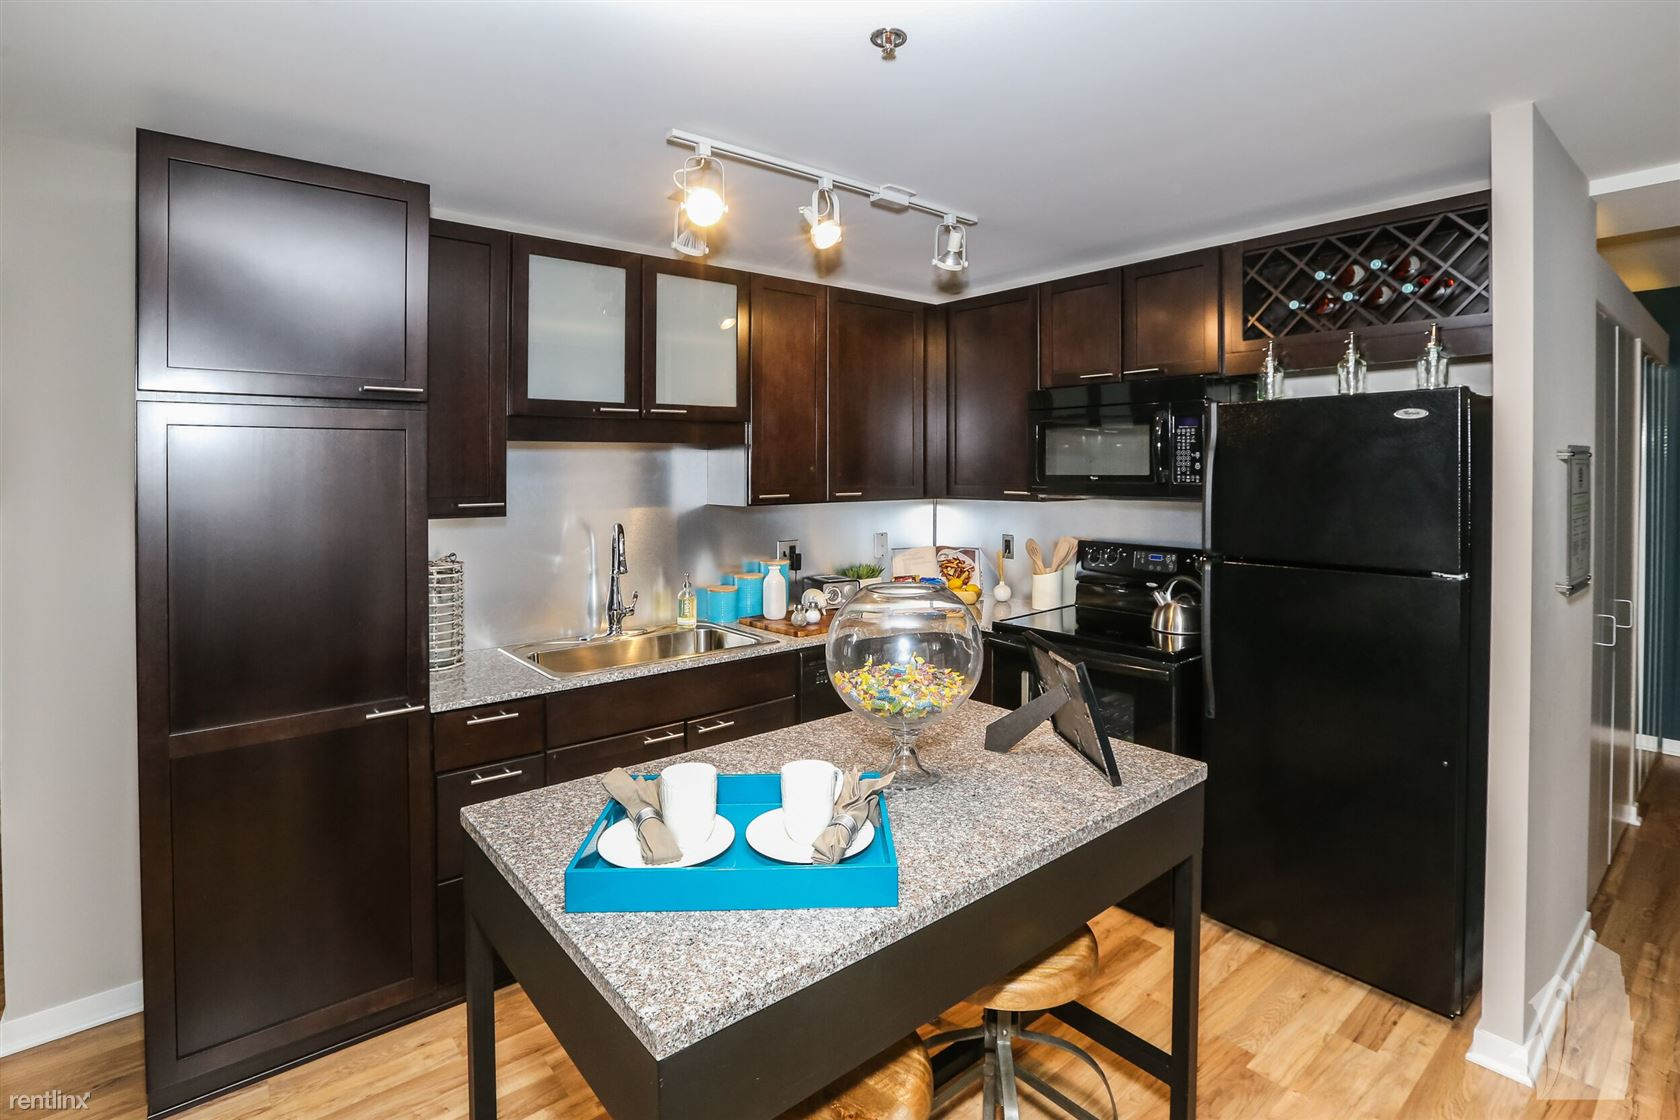 190 N Wells St - 2299USD / month